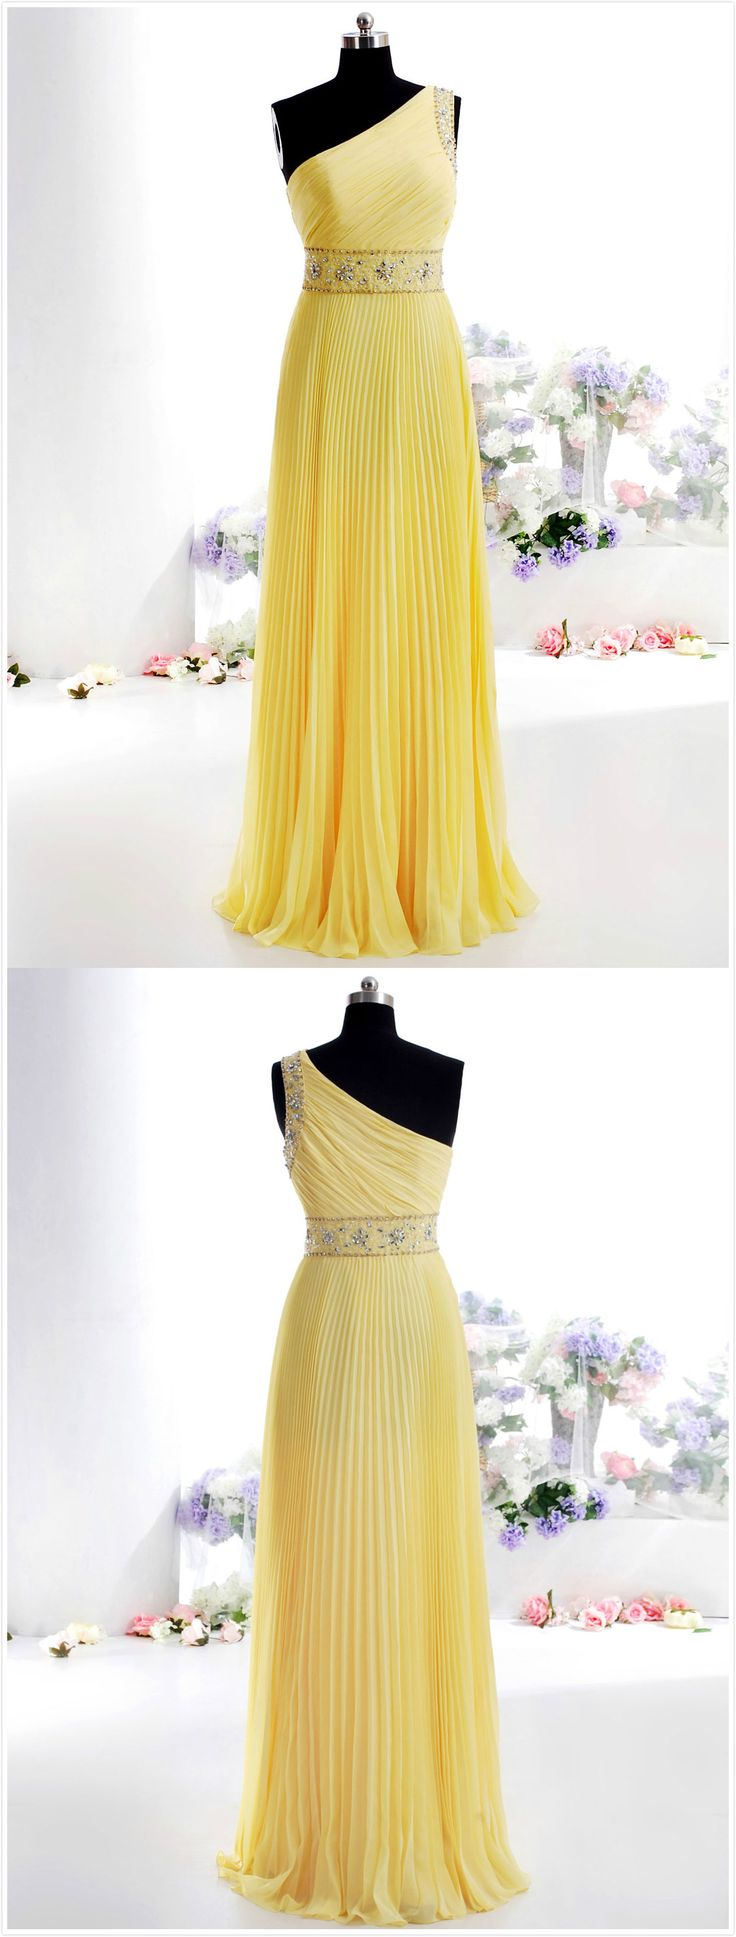 Best 25 one shoulder bridesmaid ideas only on pinterest one hot sale simple a line one shoulder bridesmaid dress cocomelody ombrellifo Images